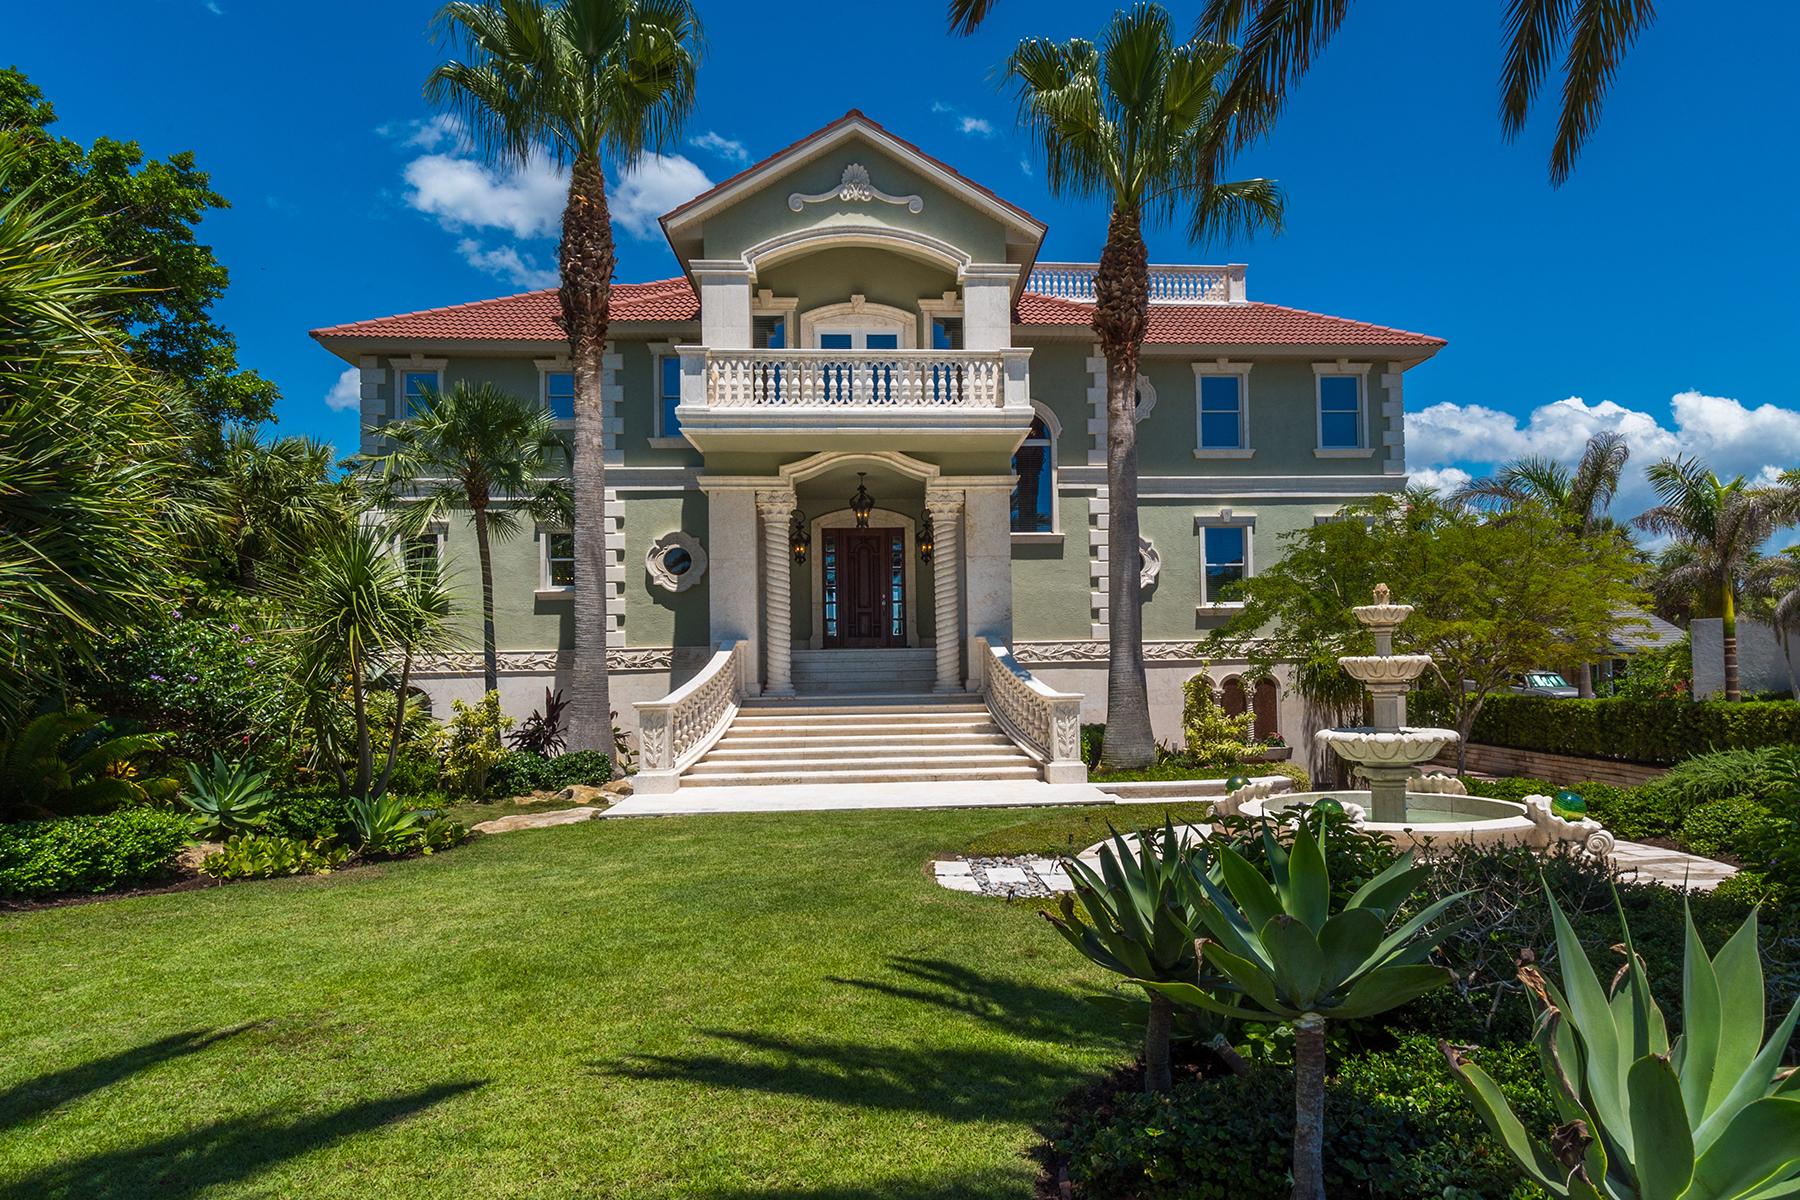 Single Family Home for Sale at CASEY KEY 144 N Casey Key Rd, Osprey, Florida 34229 United States